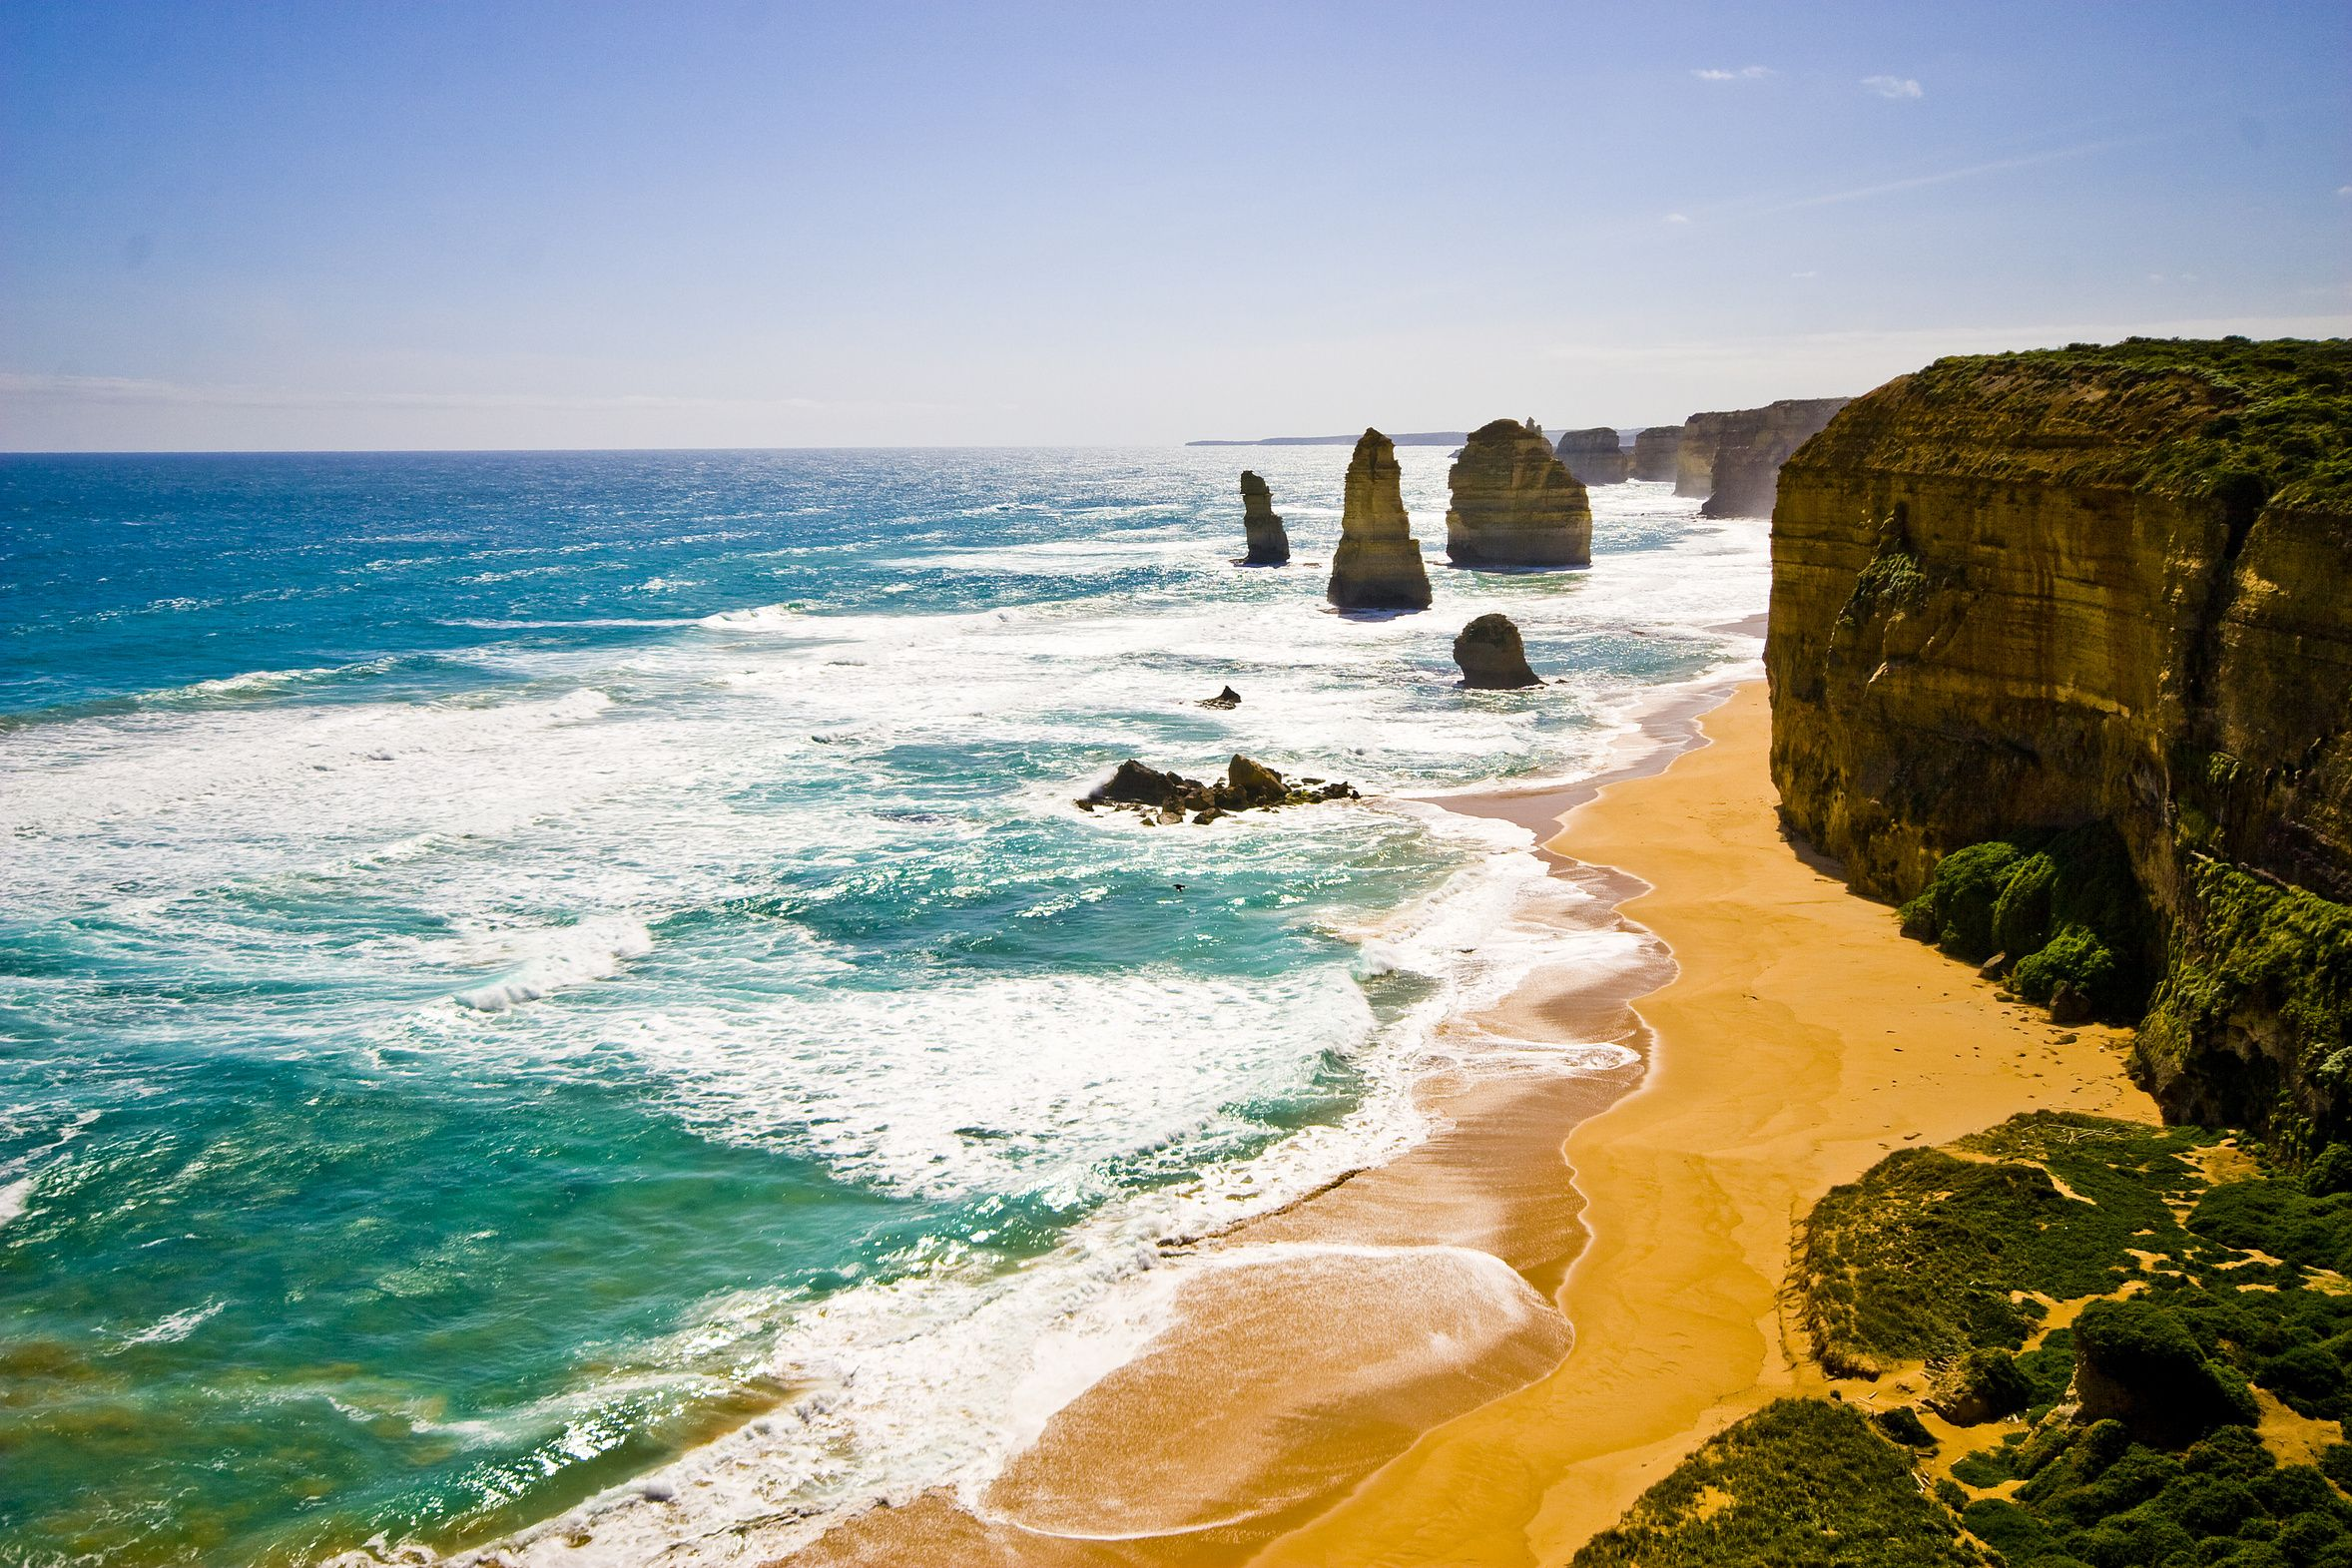 Caravaning around Australia get great discounts with Aussie Travel Saver Card. For a discount use my discount code ATRAVELCLUB http://www.aussietravelsaver.com.au/